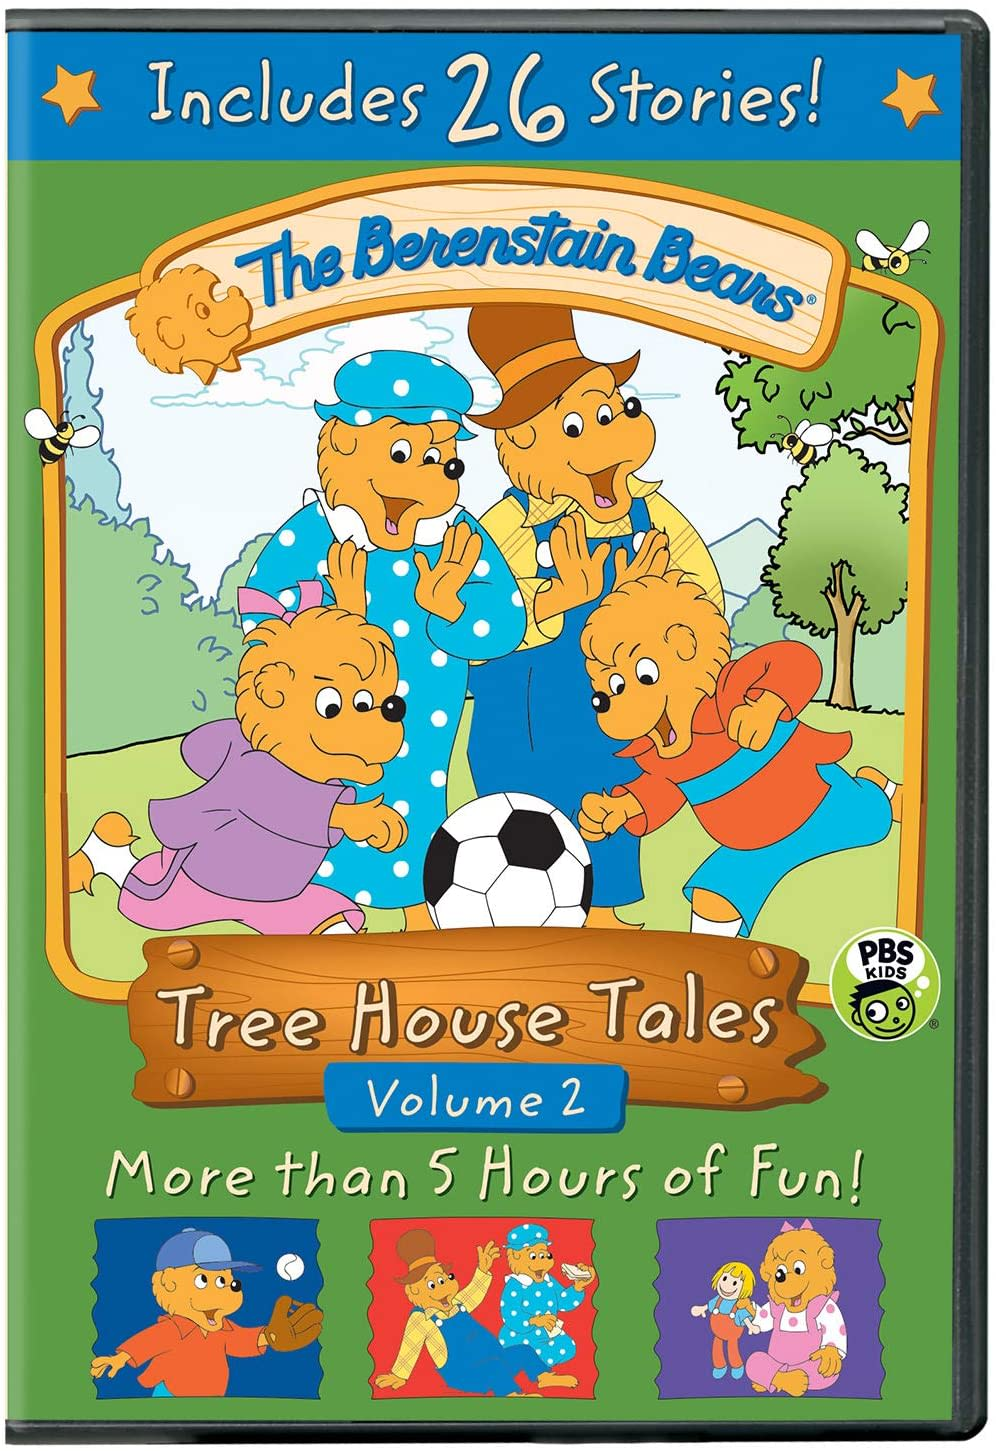 The Berenstain Bears: Tree House Tales - Volume 2 [DVD]